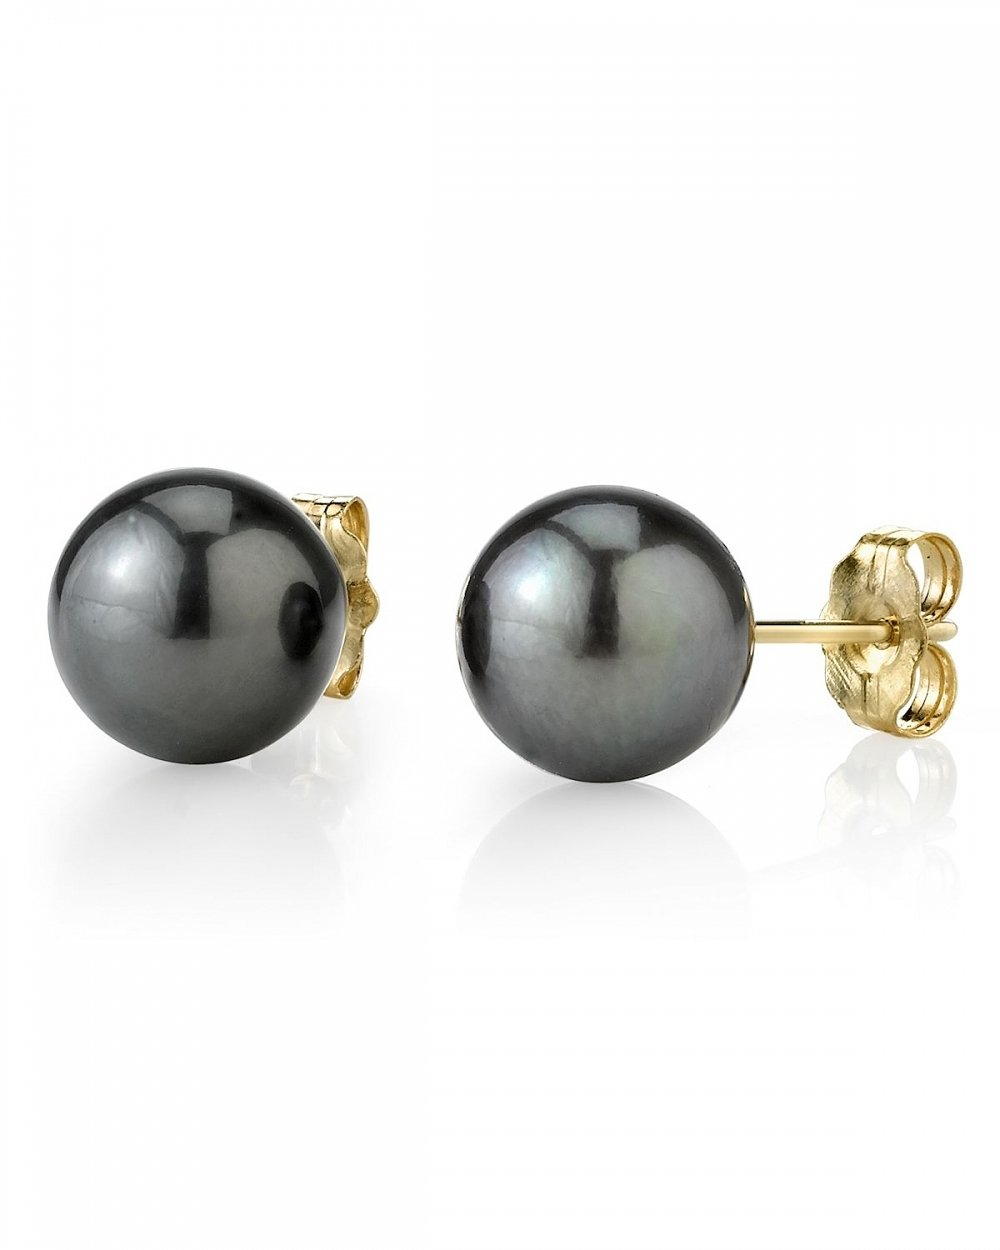 14K Gold 9-10mm Tahitian South Sea Cultured Pearl Stud Earrings - AAAA Quality